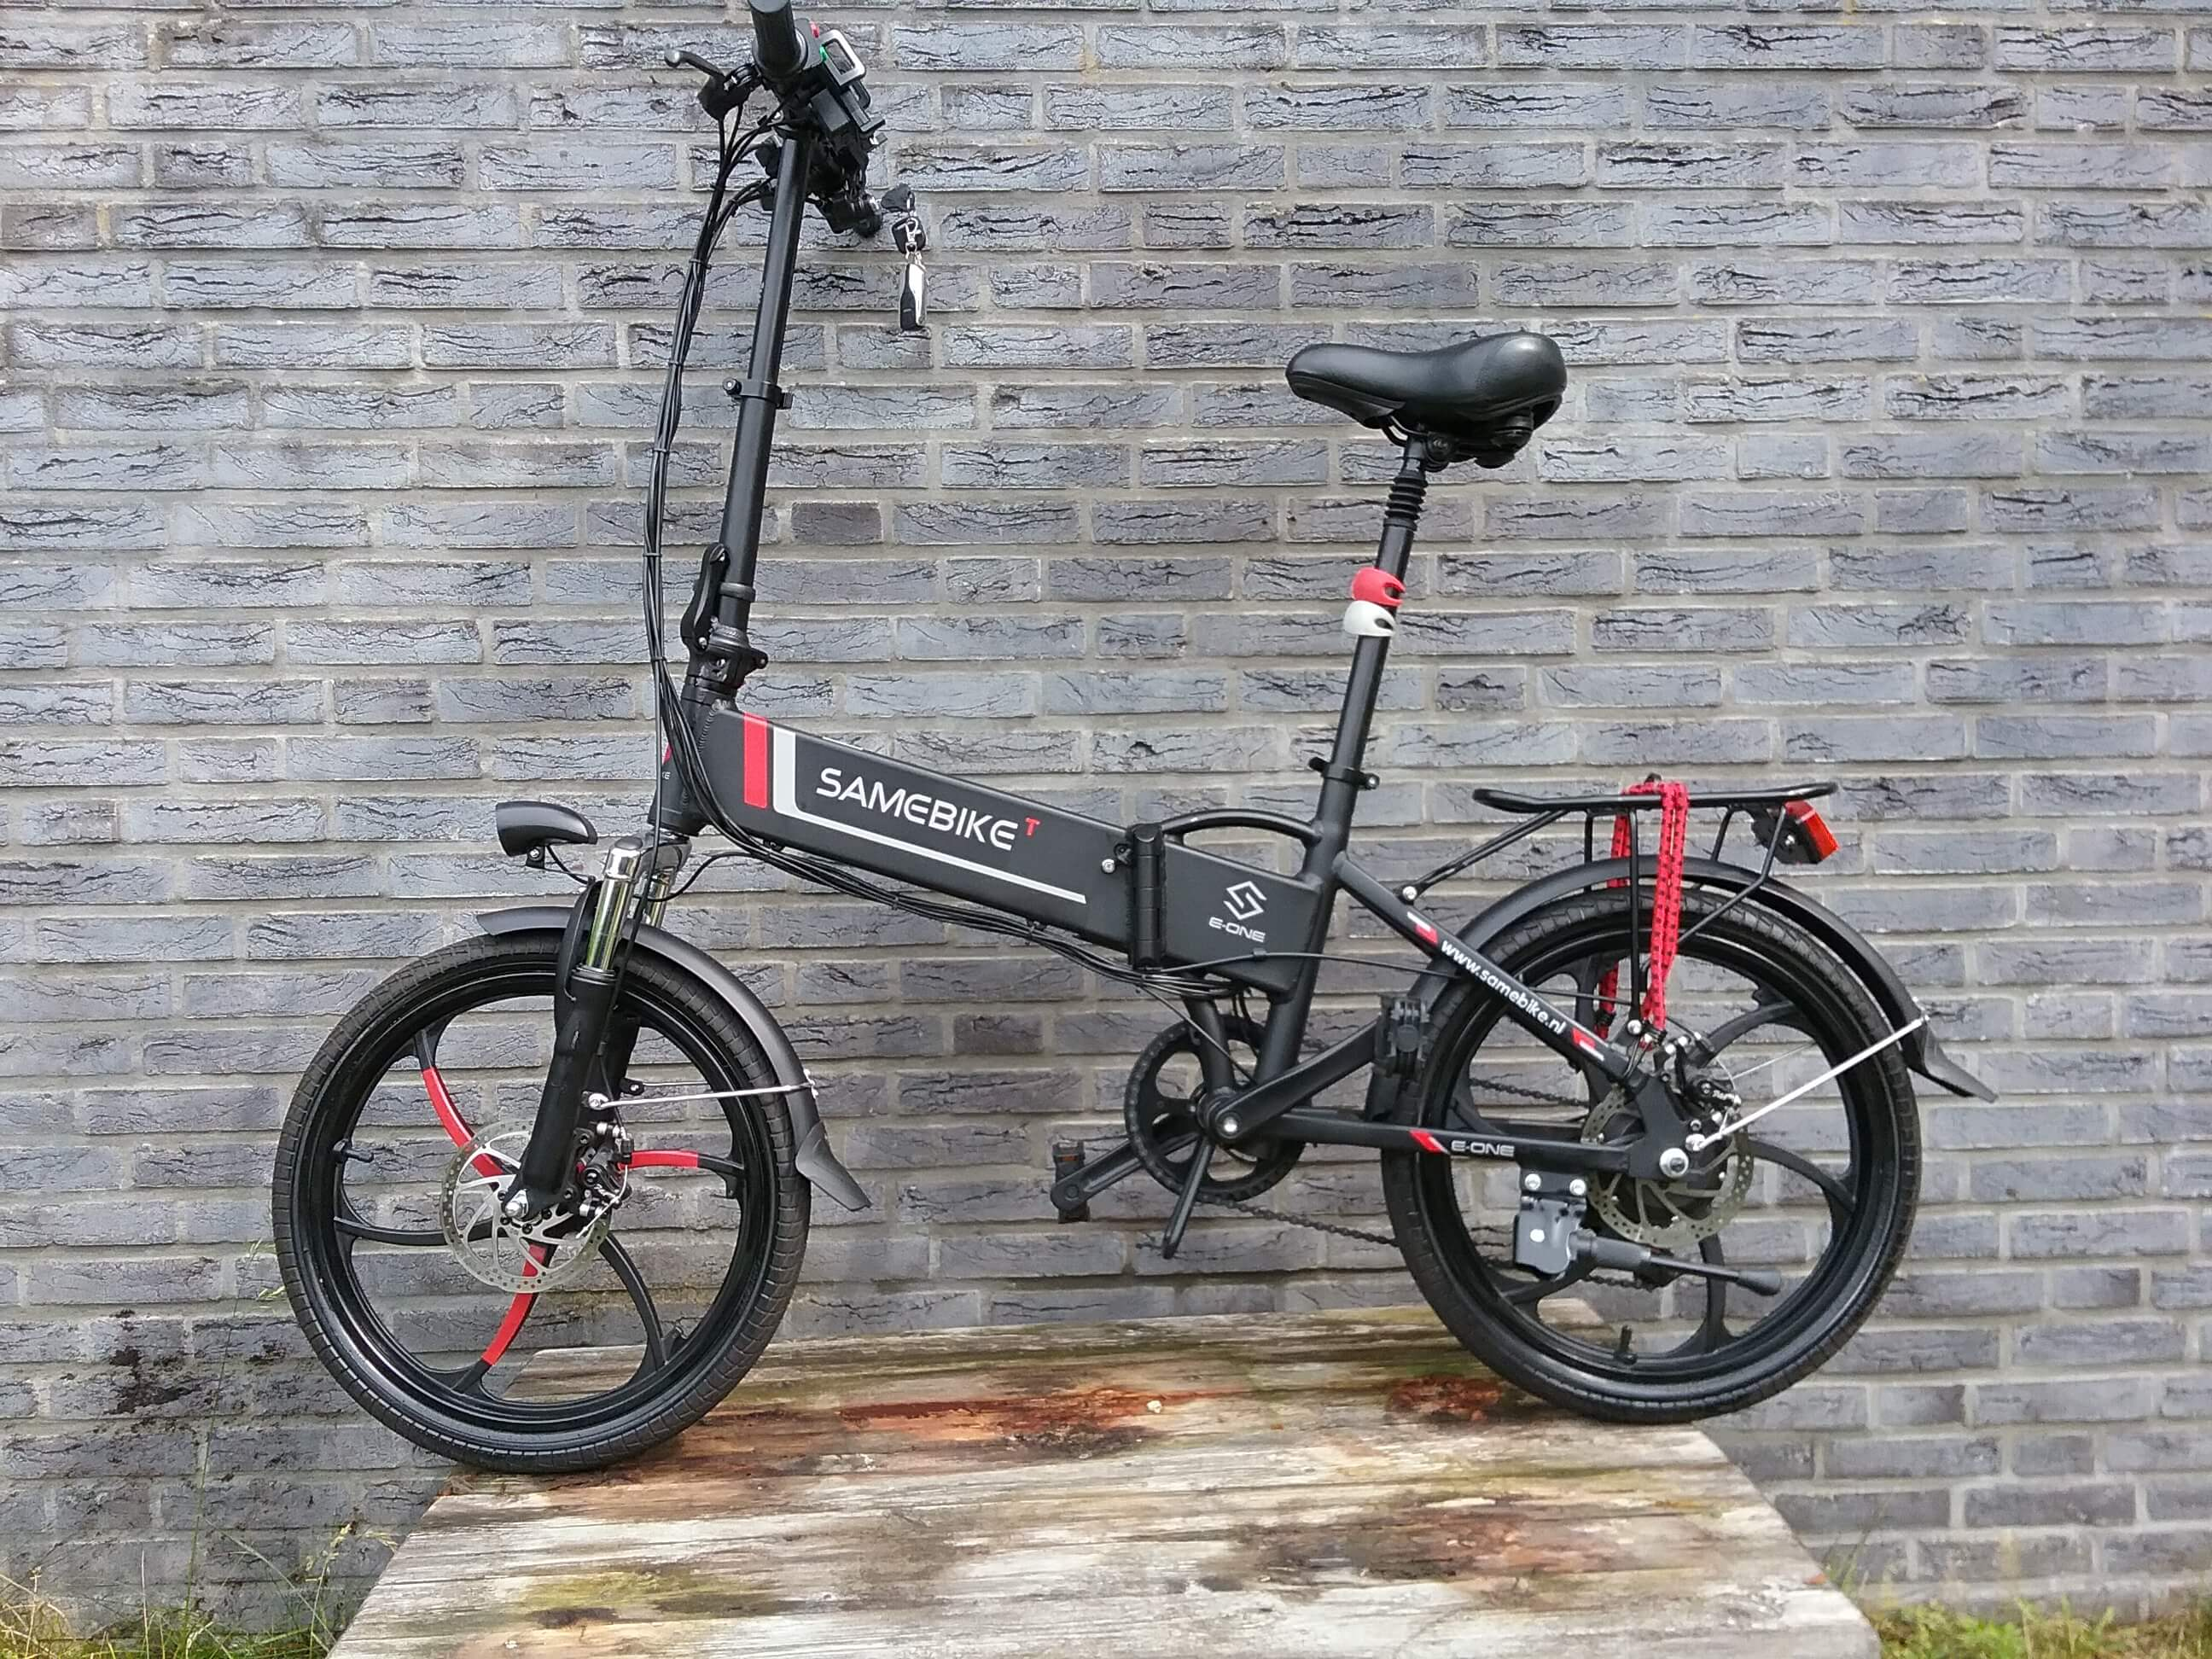 , limebike ebike review , same bike vouwfiets , samebike lo26 , samebike lo26 review , samebike lo26 , samebike lo26 amazon , samebike lo26 manual , samebike lo26 unlock , samebike lo26 battery , samebike lo26 v�lo electrique , samebike lo26 500w , same bike lo 26 moped electric bike , samebike 20lvxd30 , samebike 20lvxd30 review